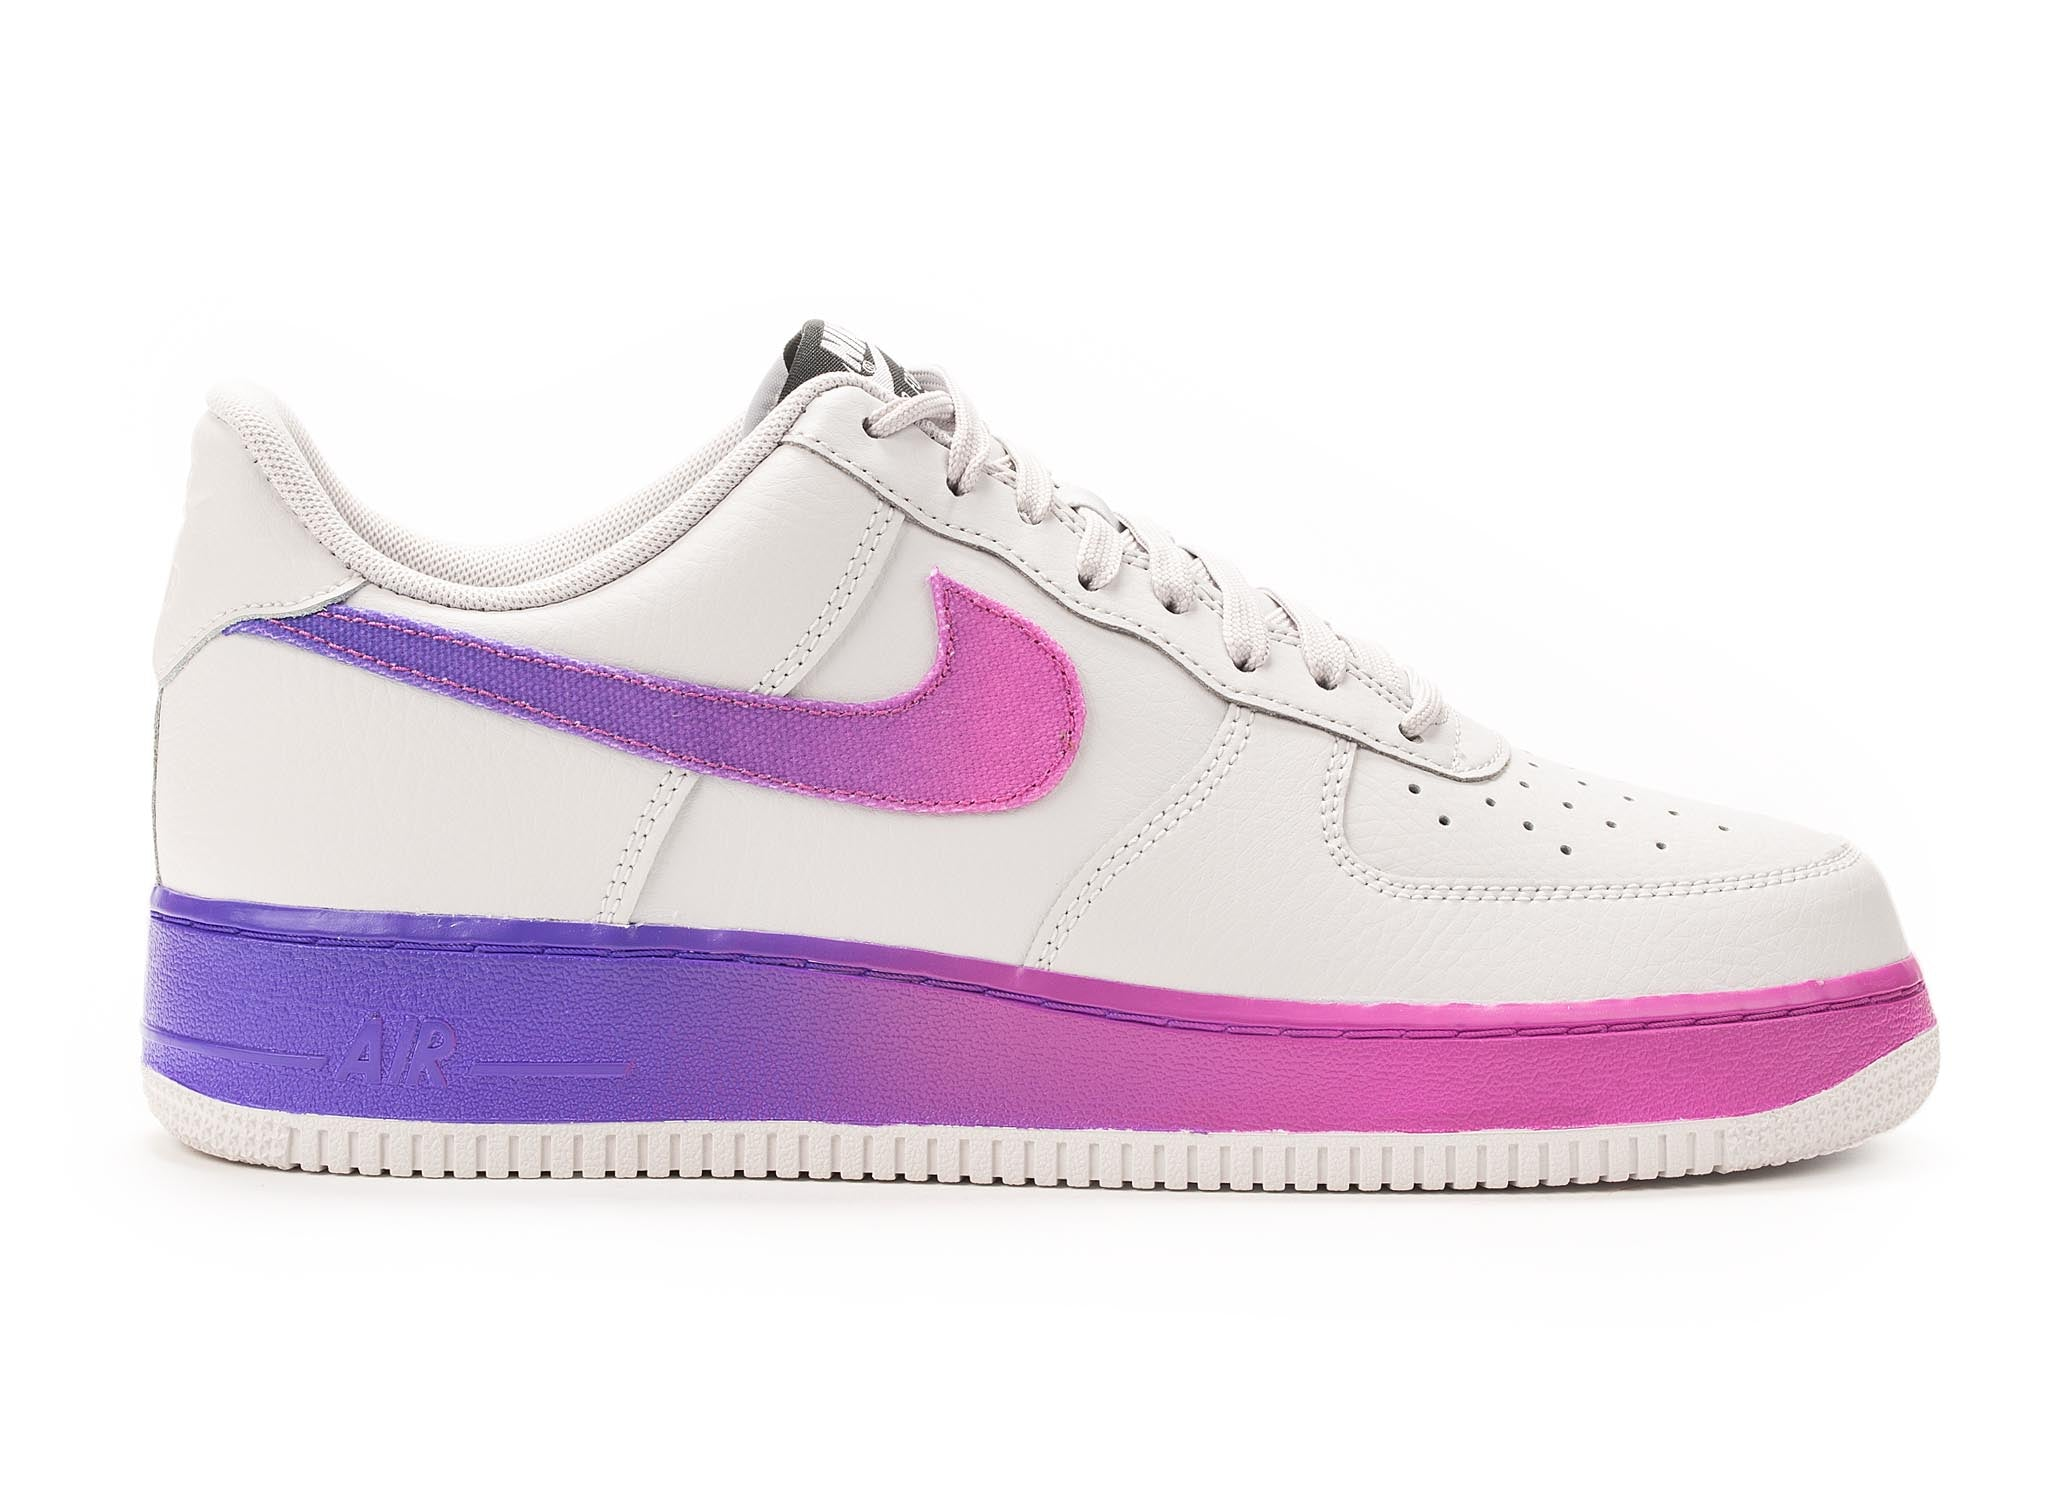 Nike Air Force 1 '07 LV8 Vast GreyHyper Grape